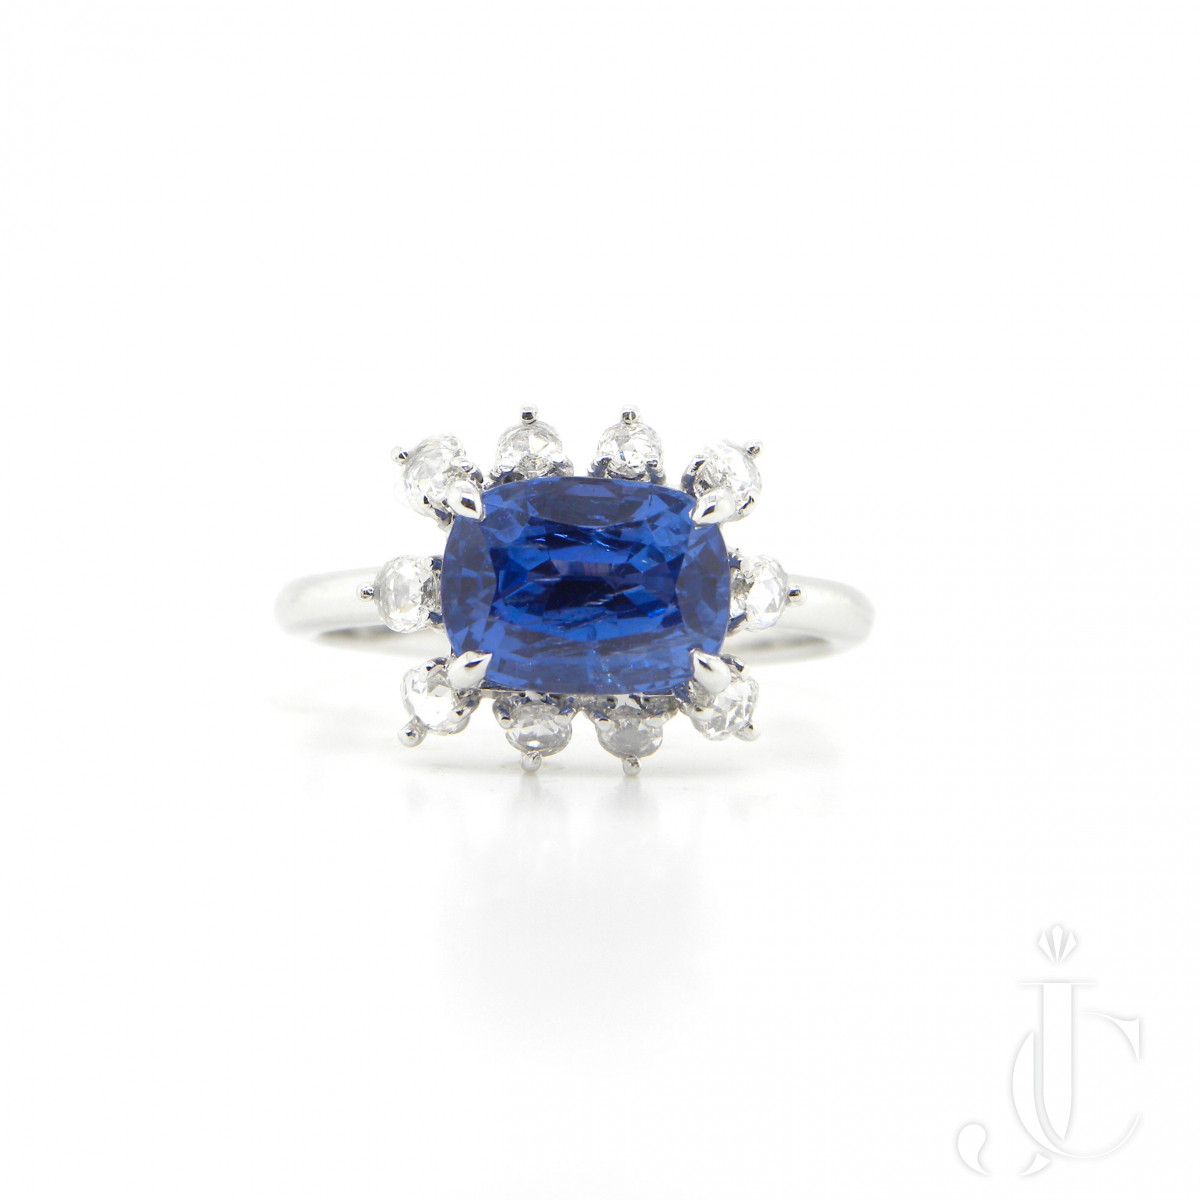 2.67 Carat GIA Certified Unheated Burmese Sapphire and White Diamond Ring